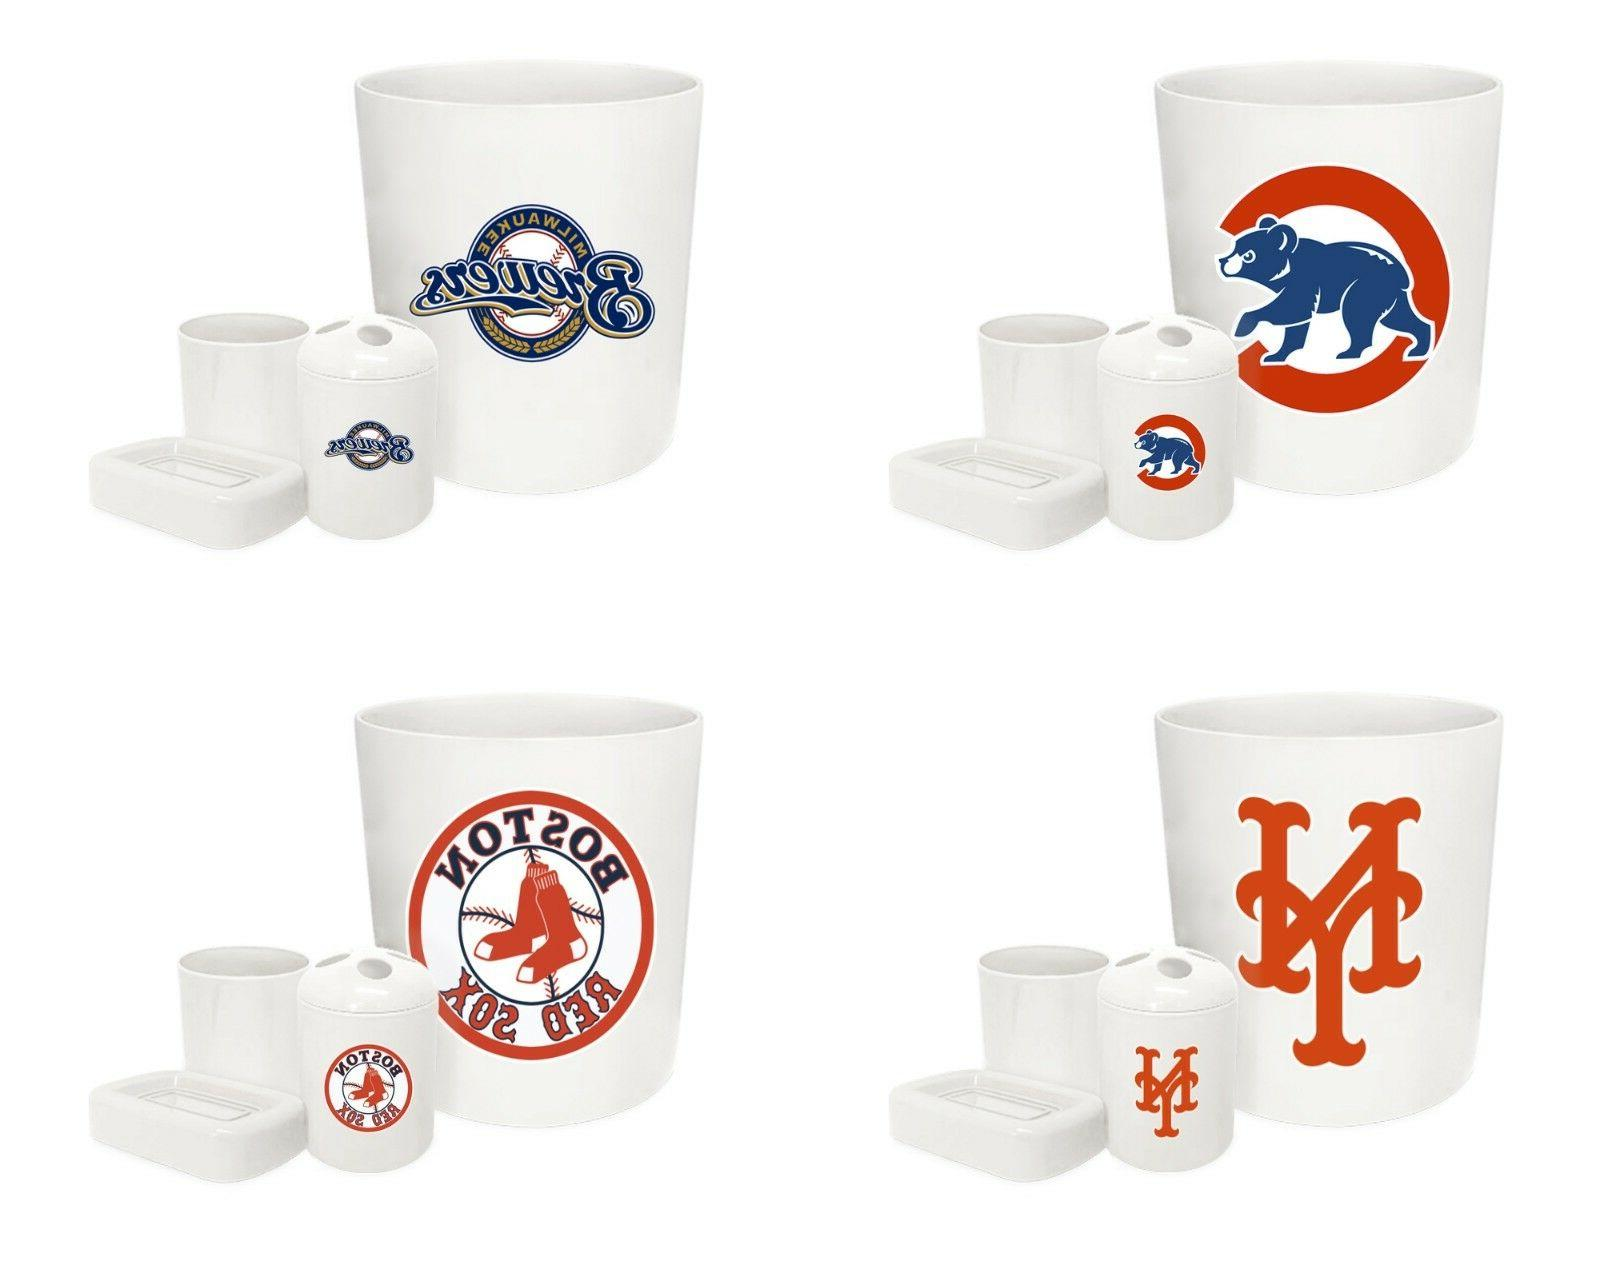 mlb logo theme white 4 pc bathroom